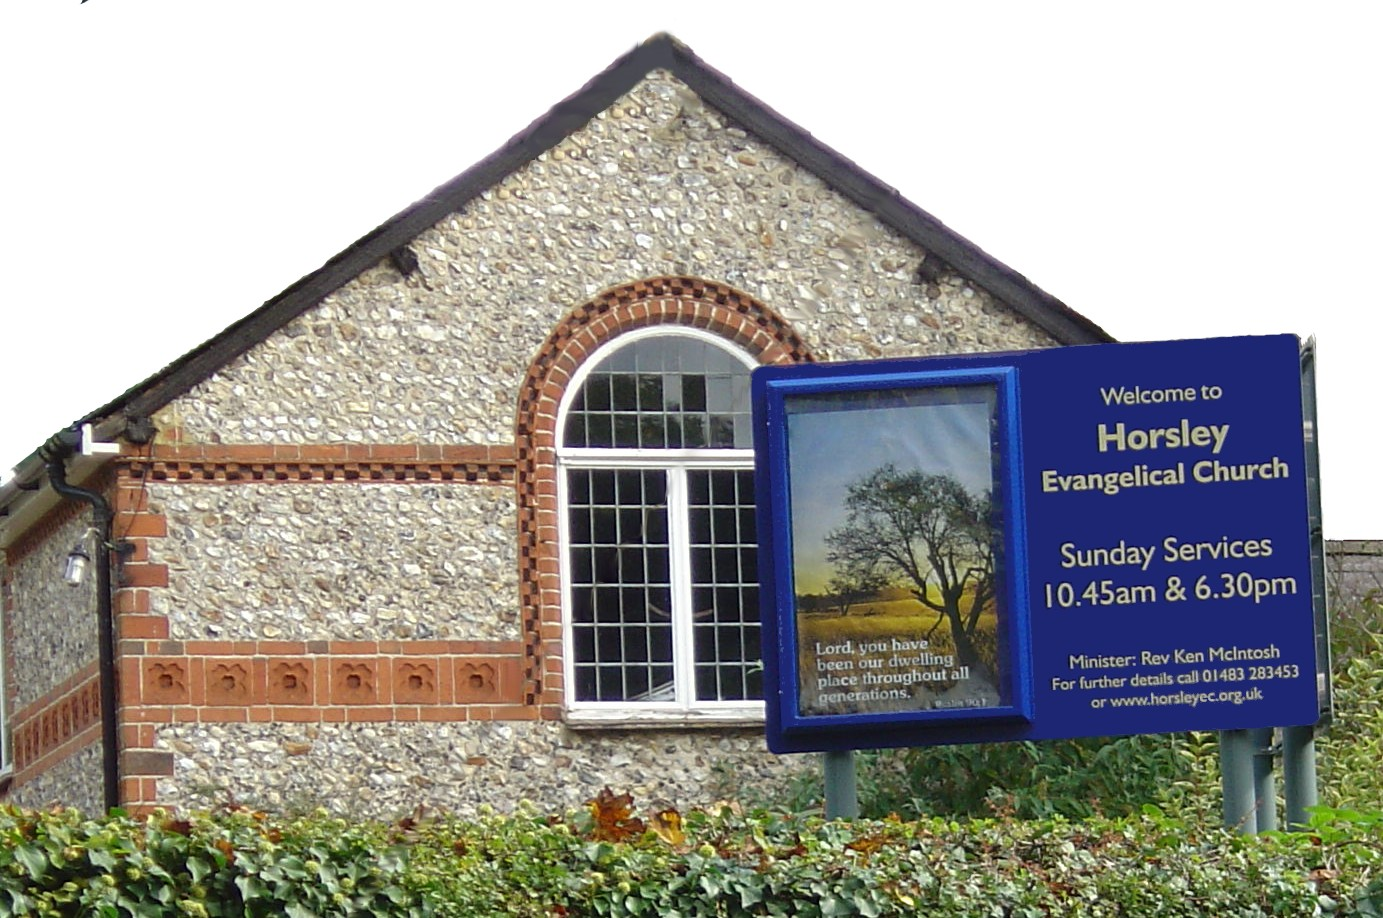 Horsley Evangelical Church